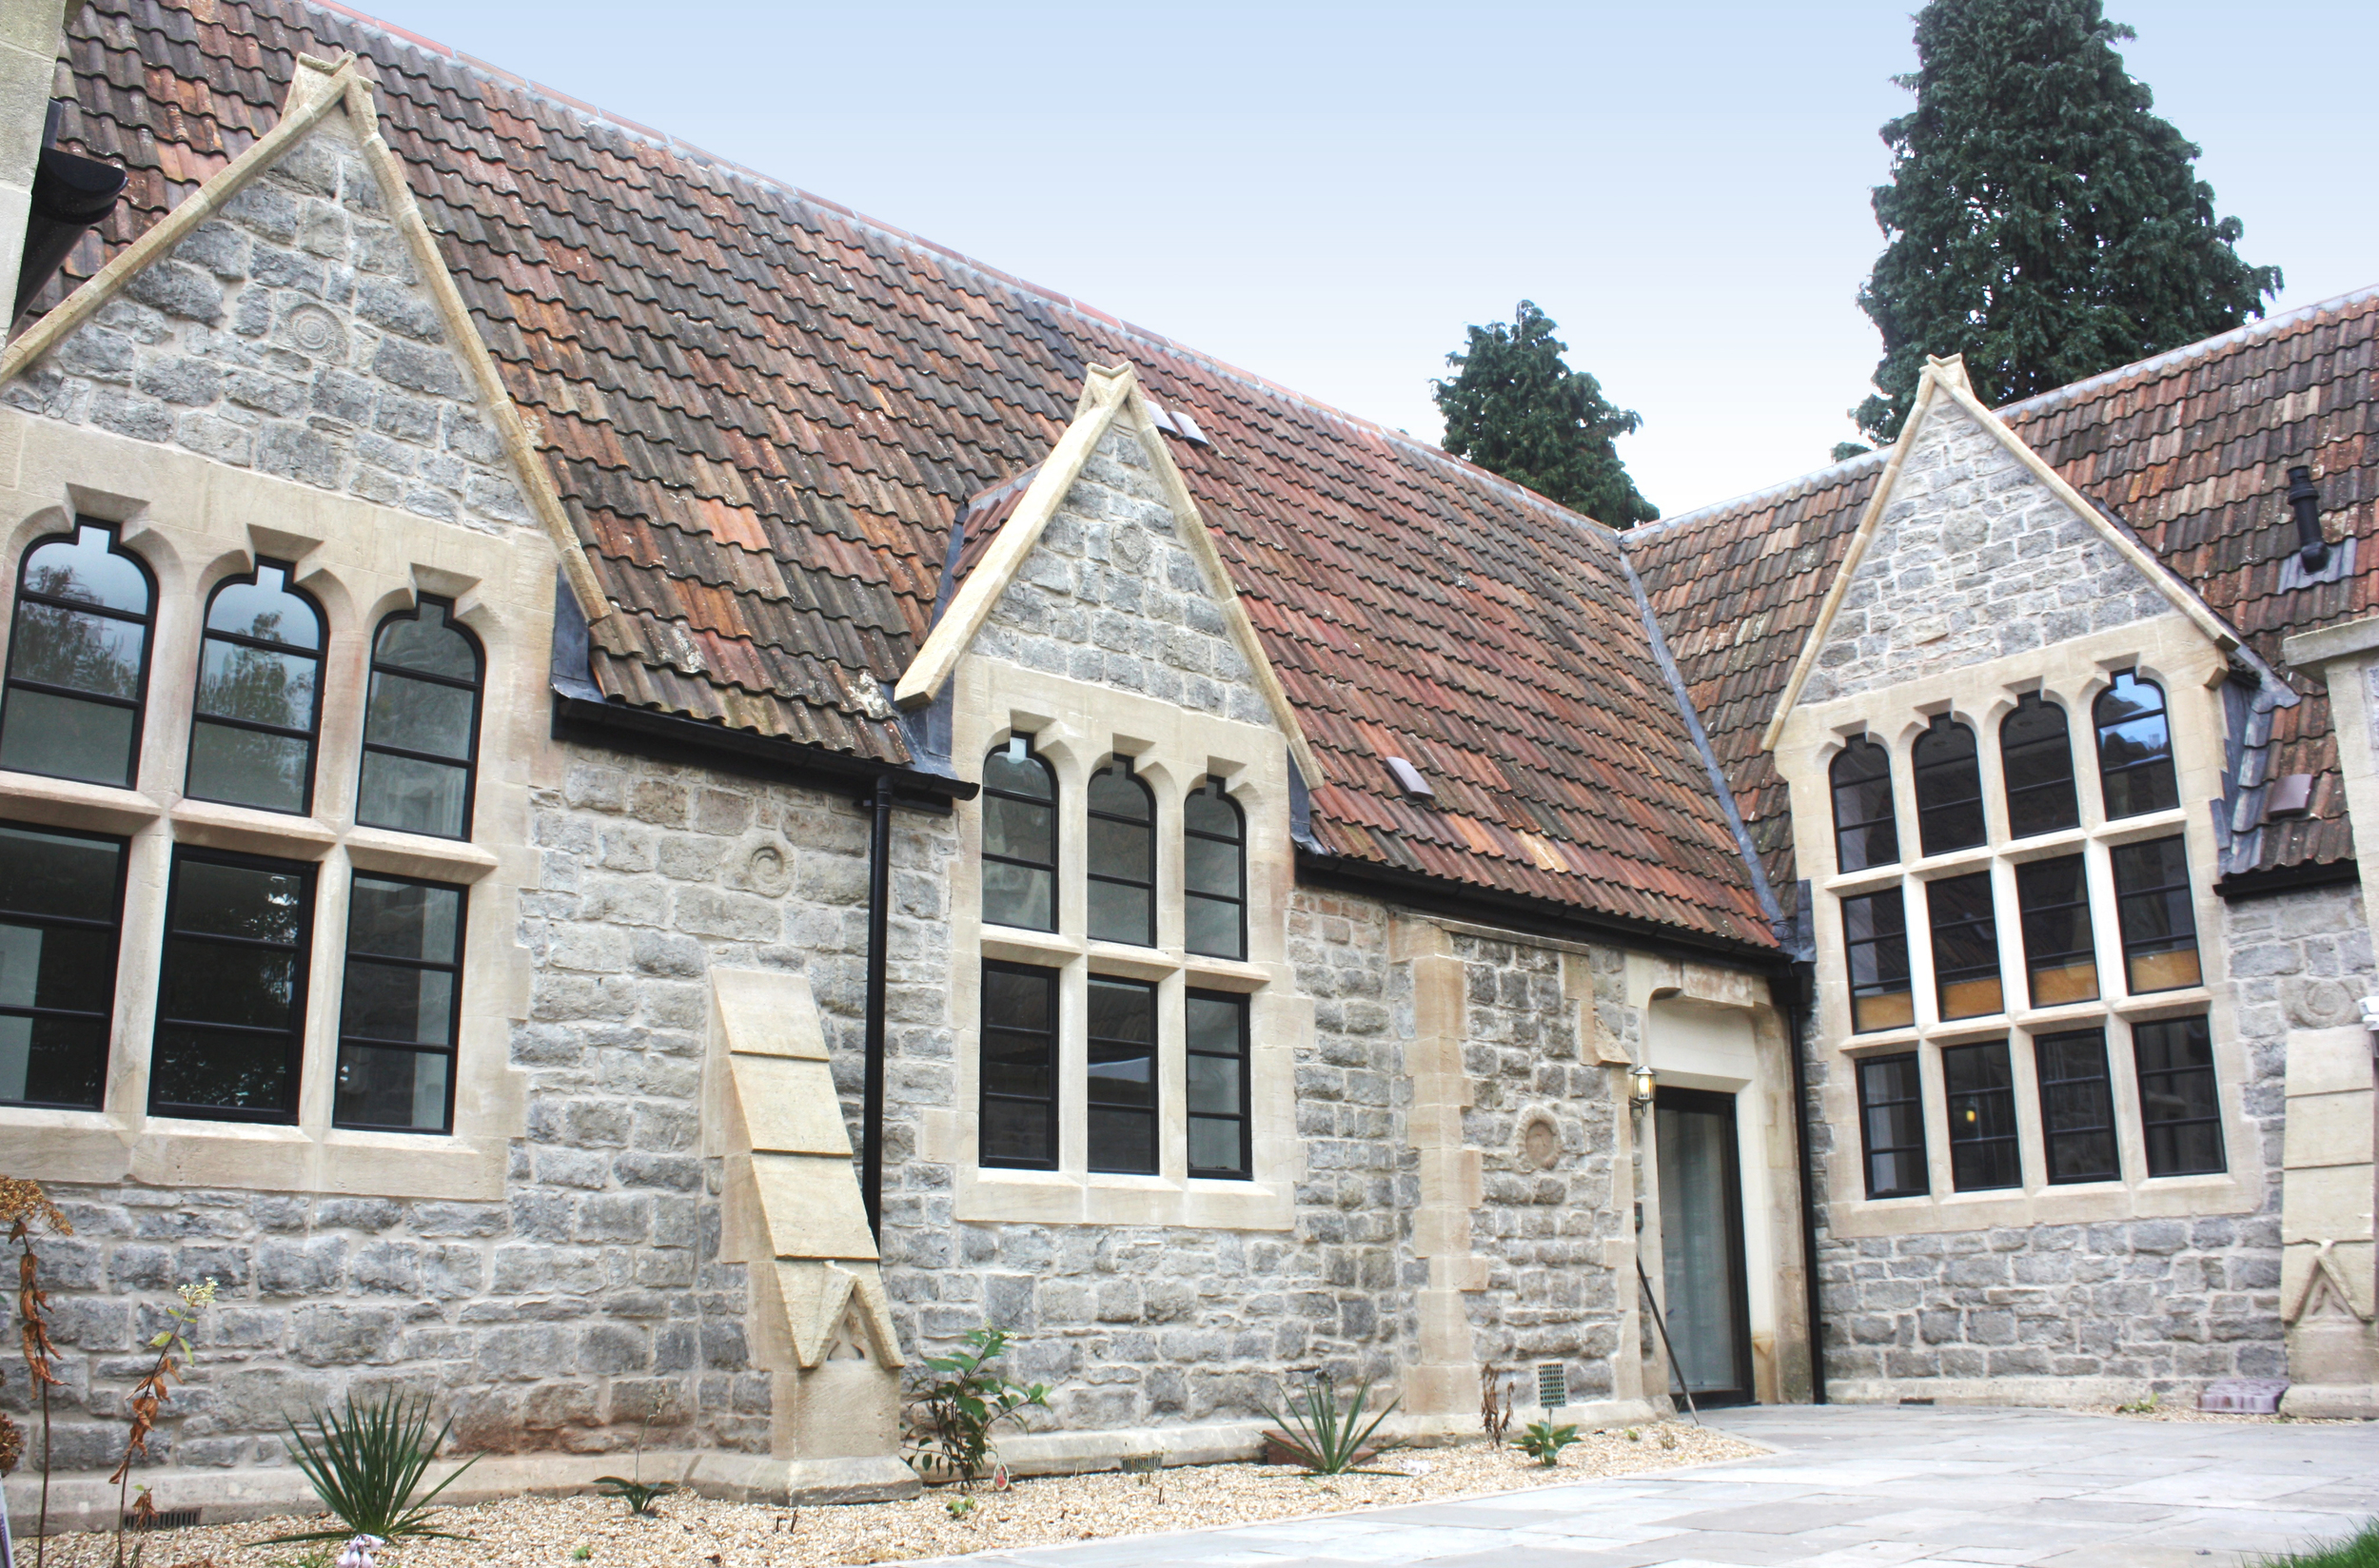 Completed exterior of the award-winning Bath Hill School development